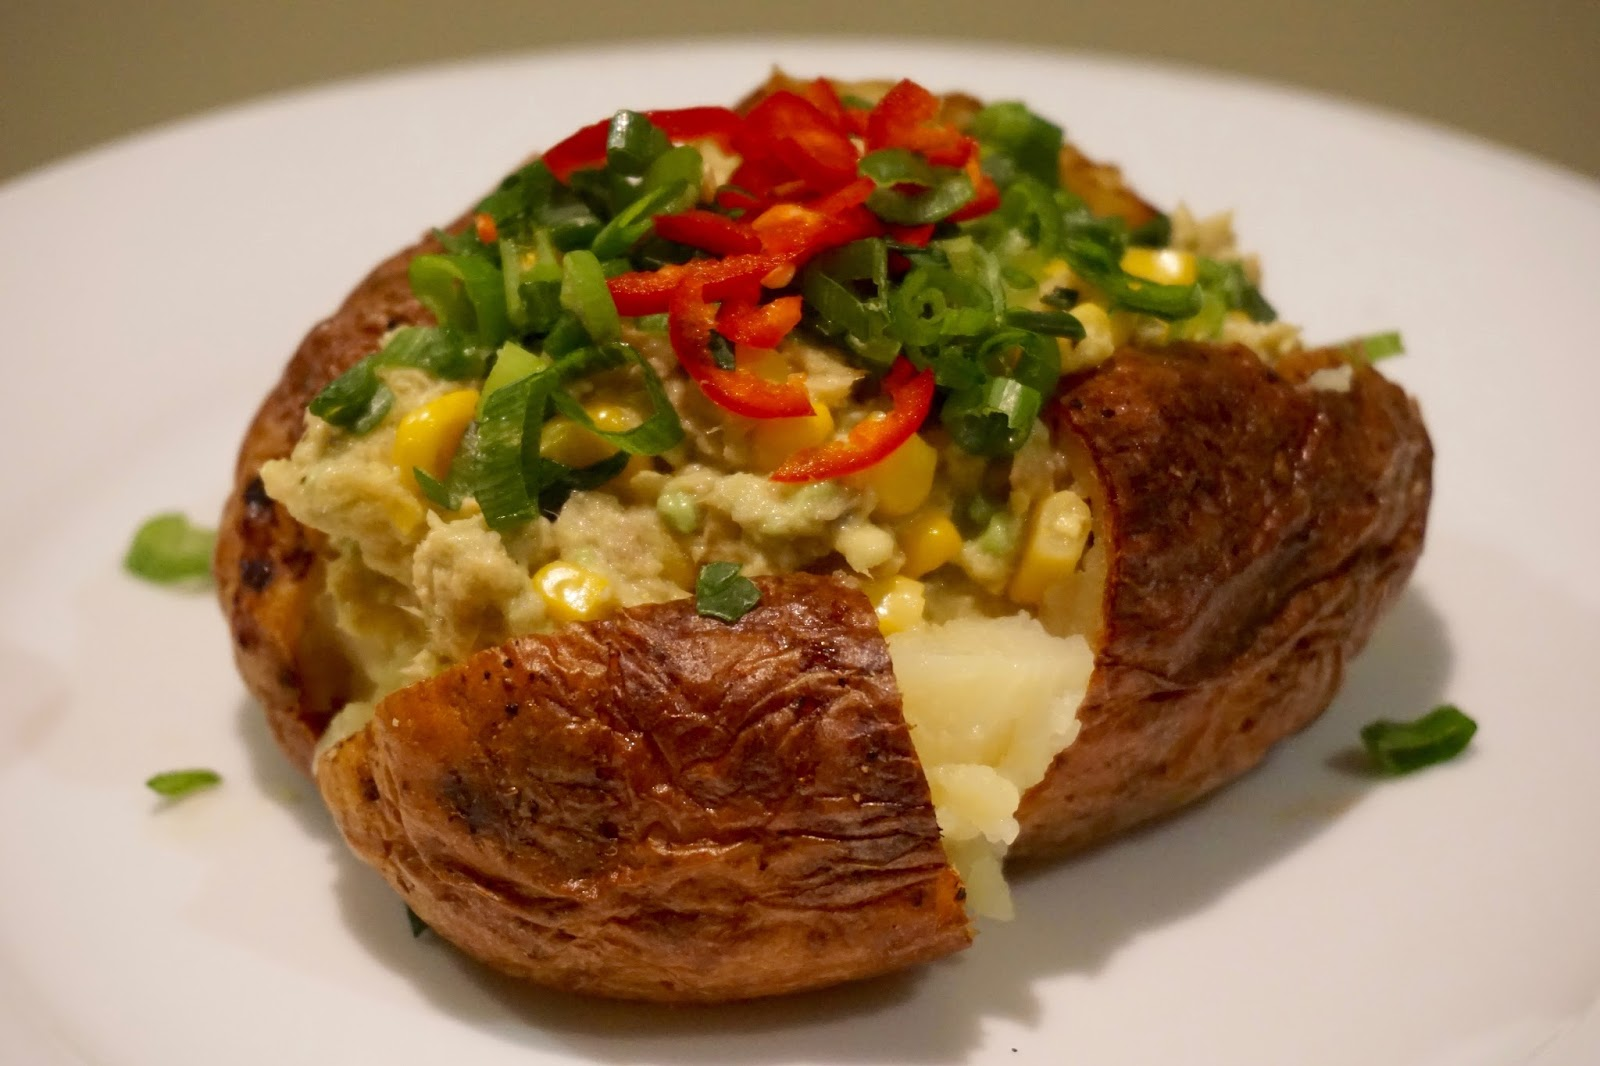 No Mayonnaise Fast Quick Oven Baked Jacket Potato With Avocado And